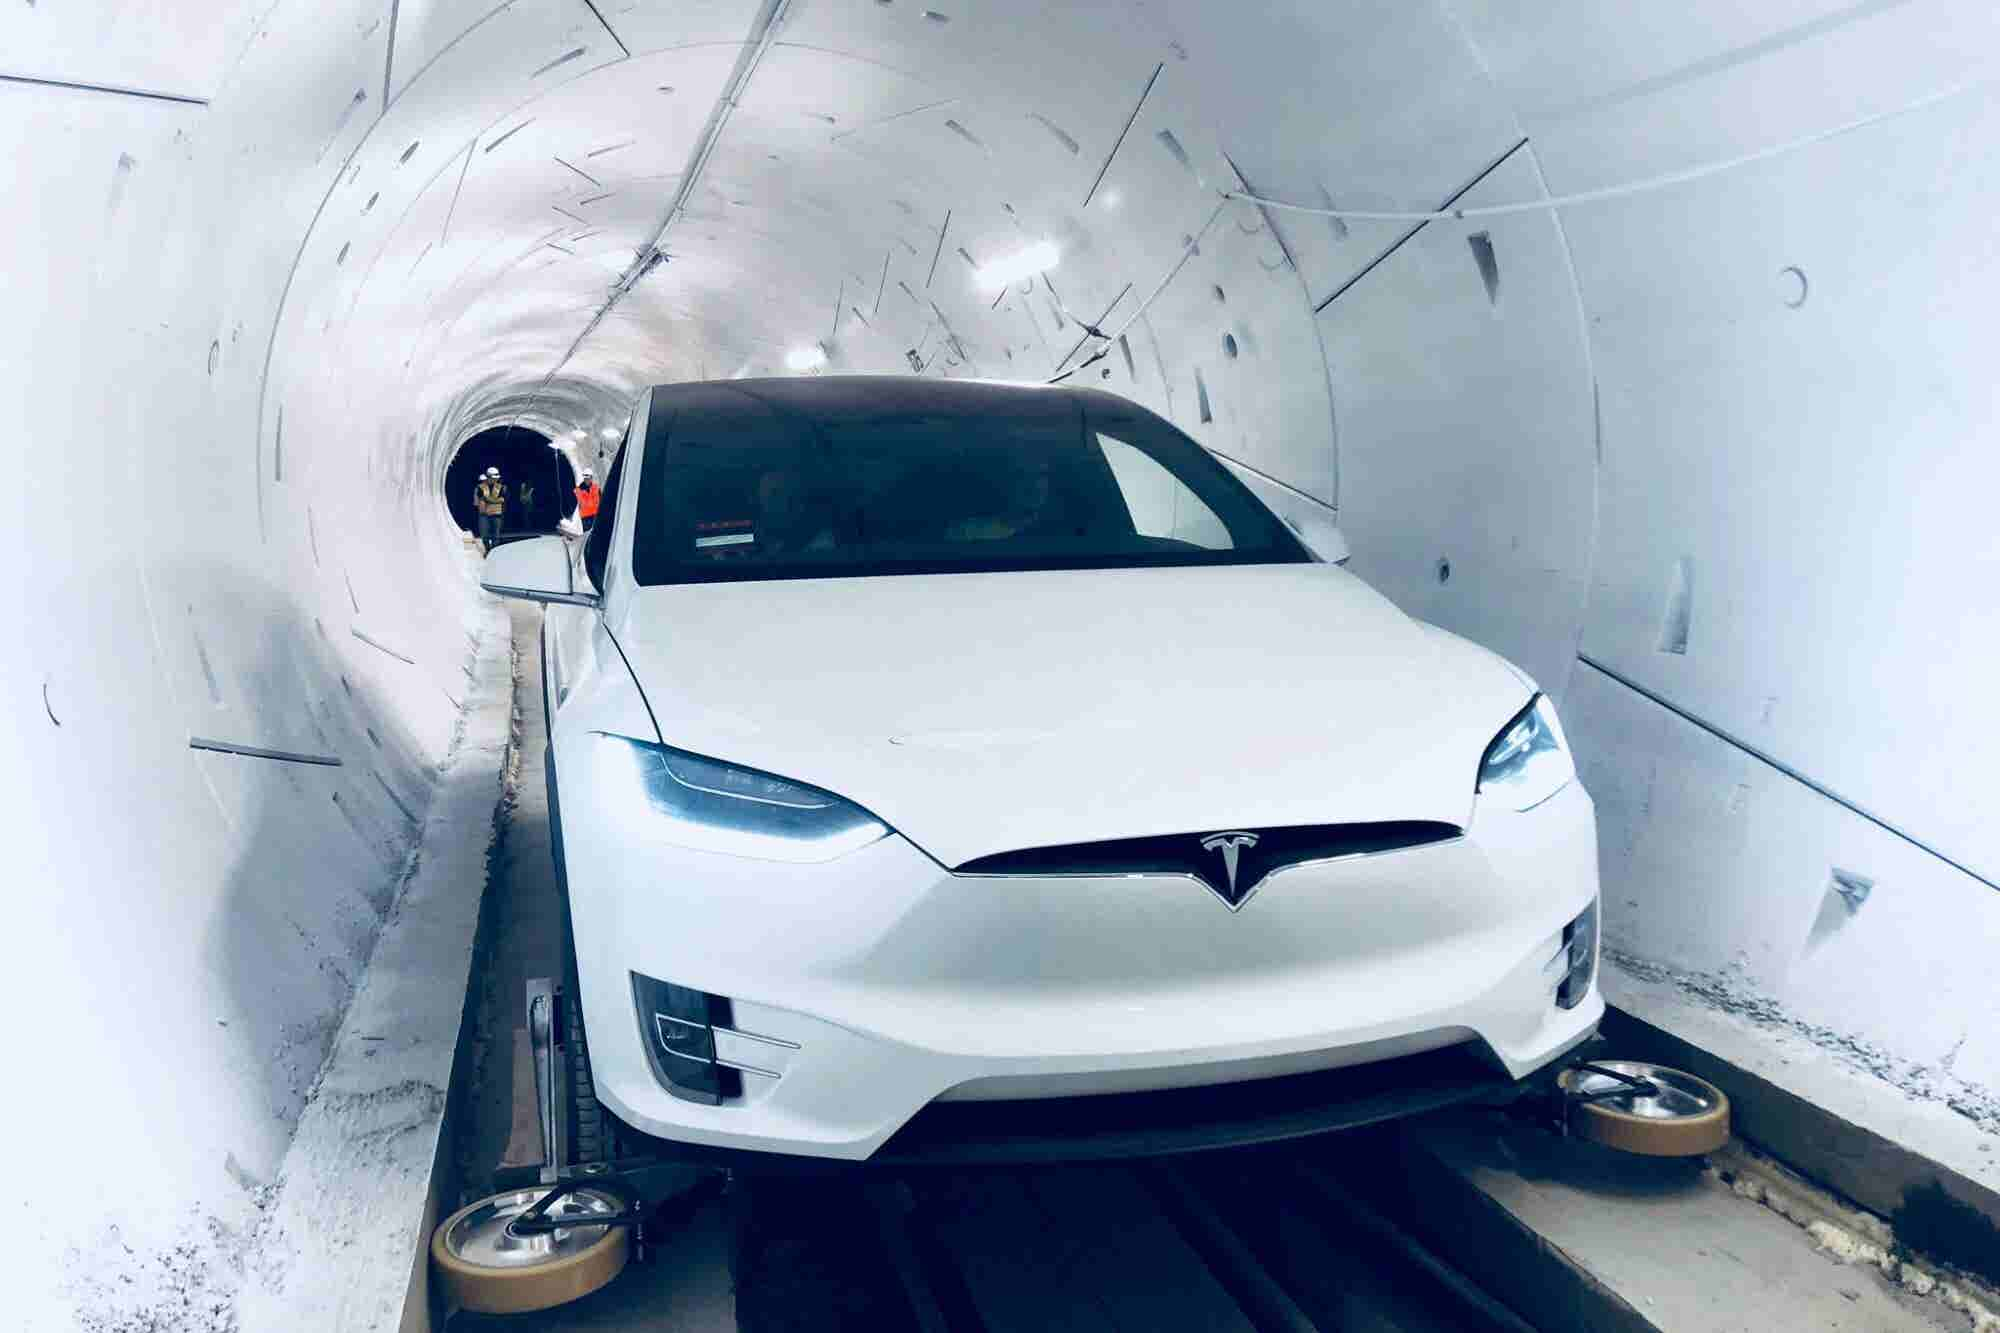 Elon Musk's L.A. Tunnel Turns Teslas Into a 'Rail-Guided Train'